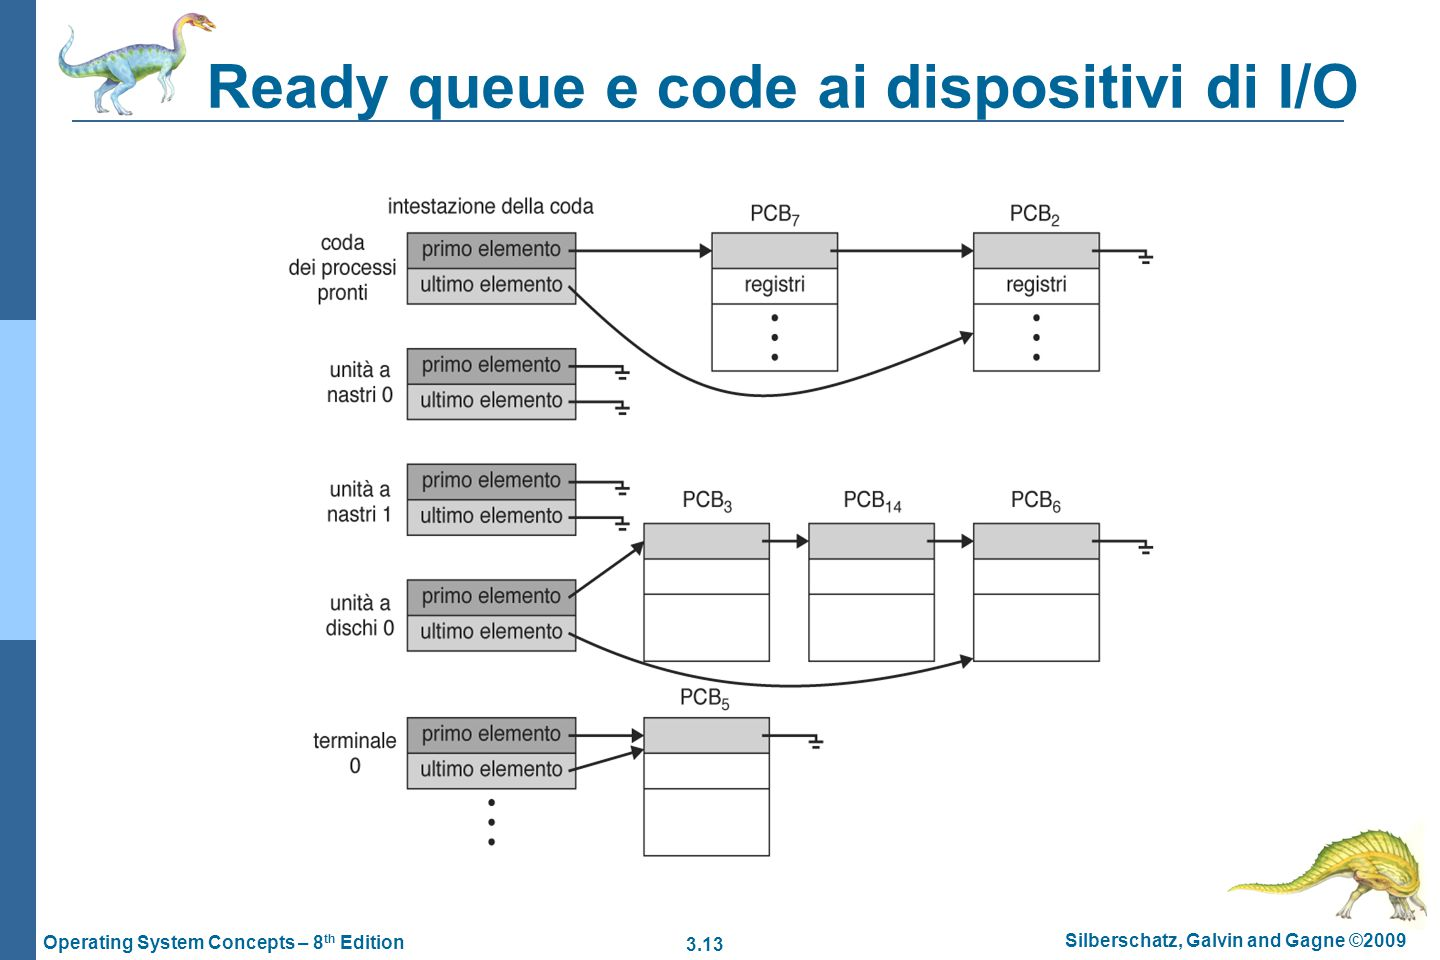 Ready queue e code ai dispositivi di I/O